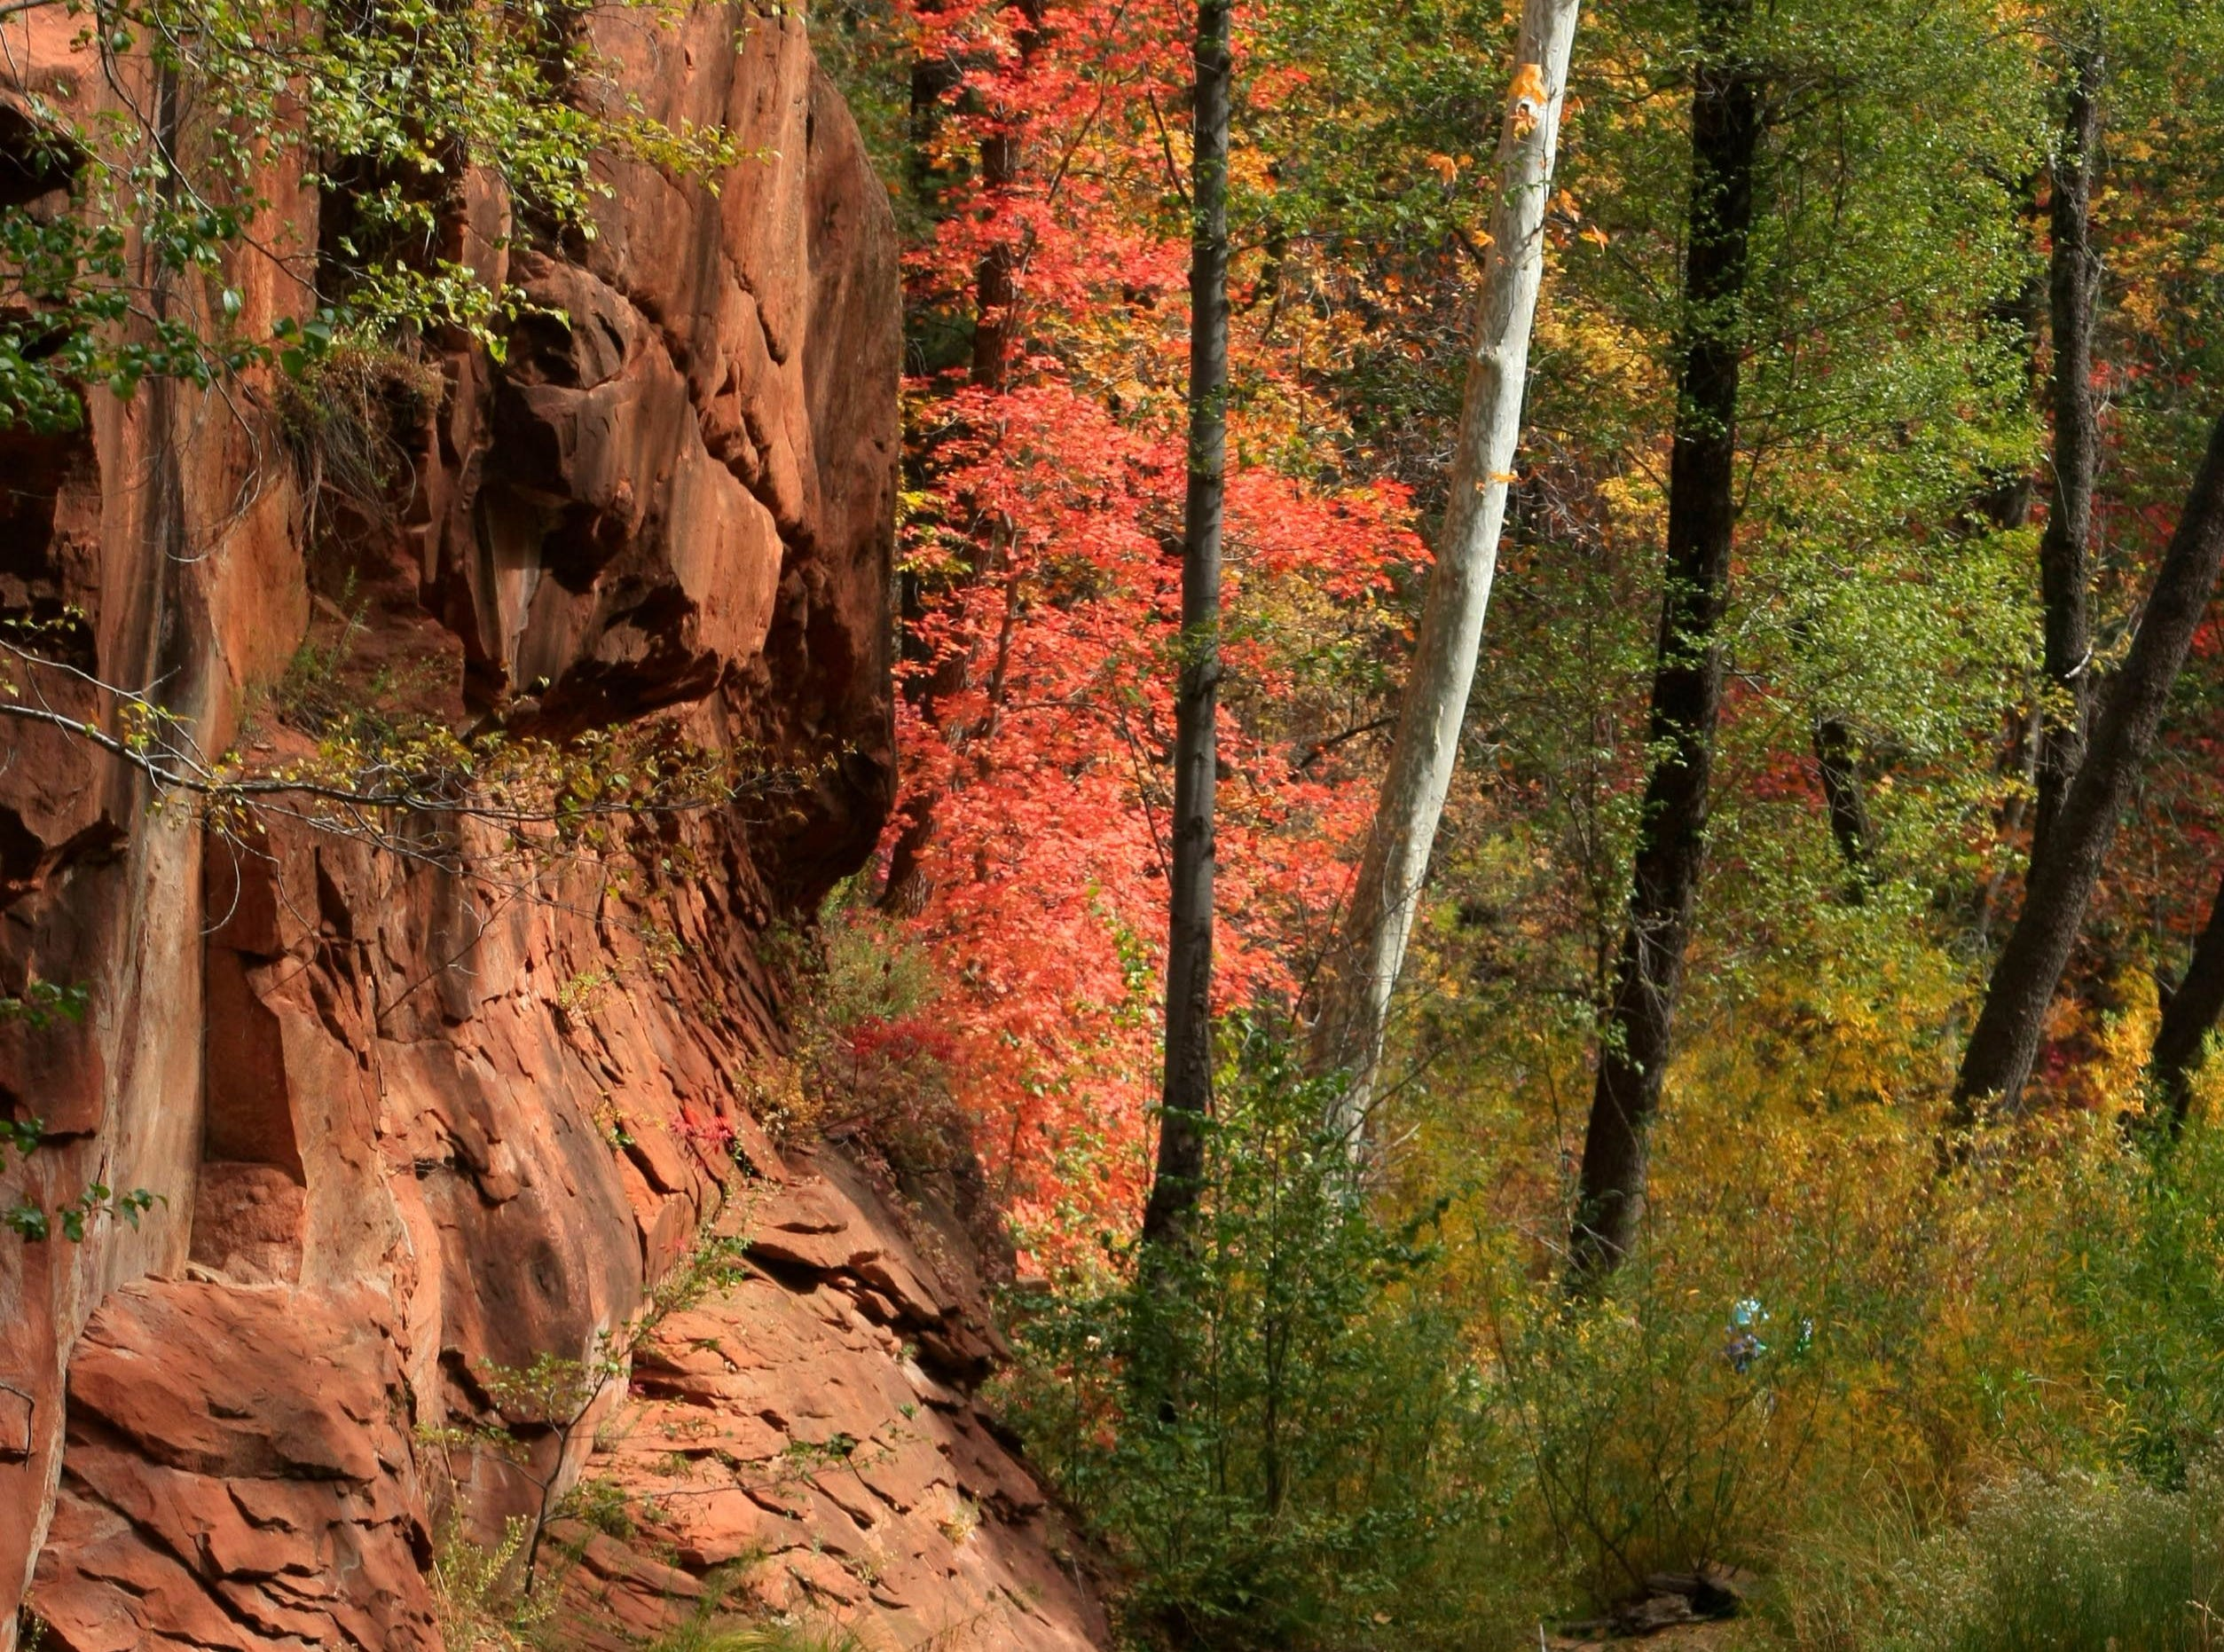 Autumn colors sweep through Oak Creek Canyon on the West Fork Trail north of Sedona.  Rob Schumacher/The  Republic Autumn colors sweep through Oak Creek Canyon on the West Fork Trail north of Sedona.